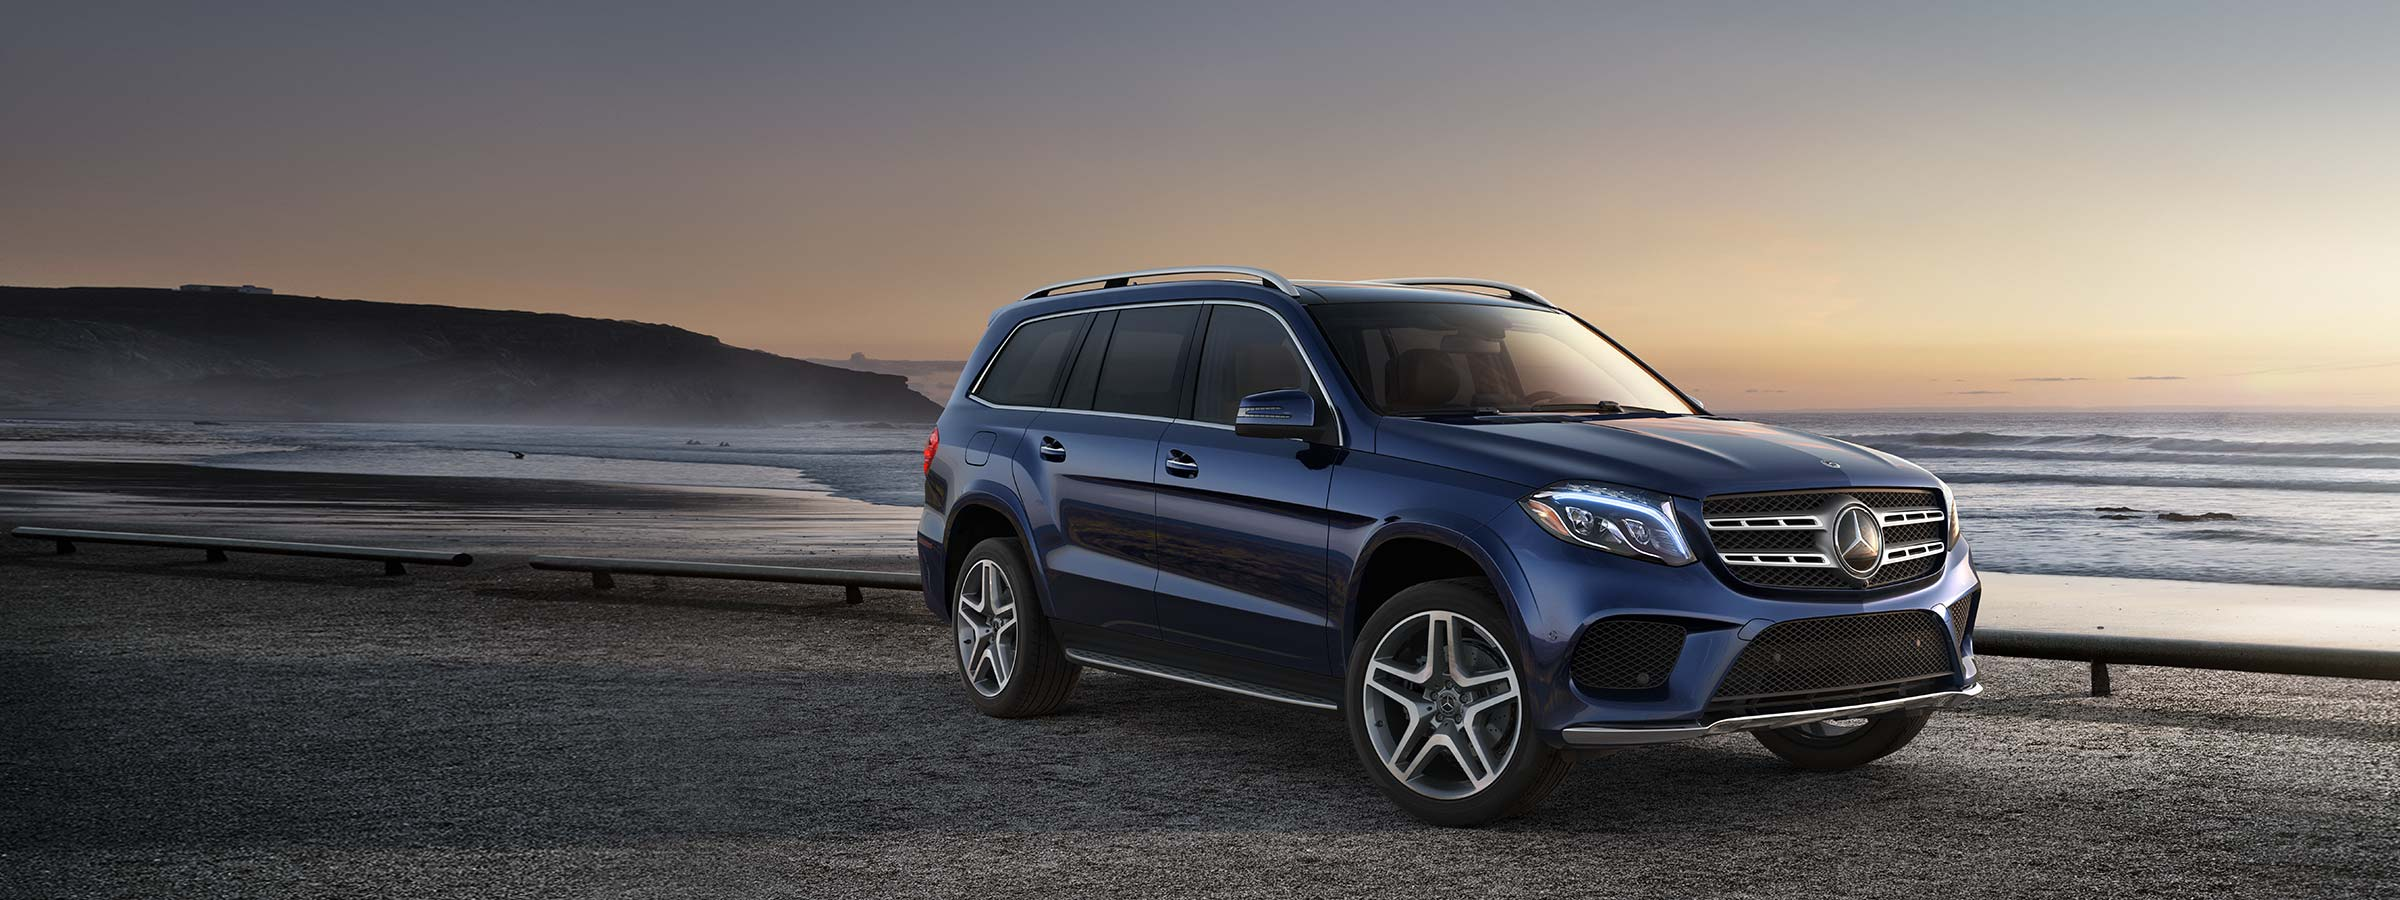 Luxury Suv: 2019 GLS Large Luxury SUV